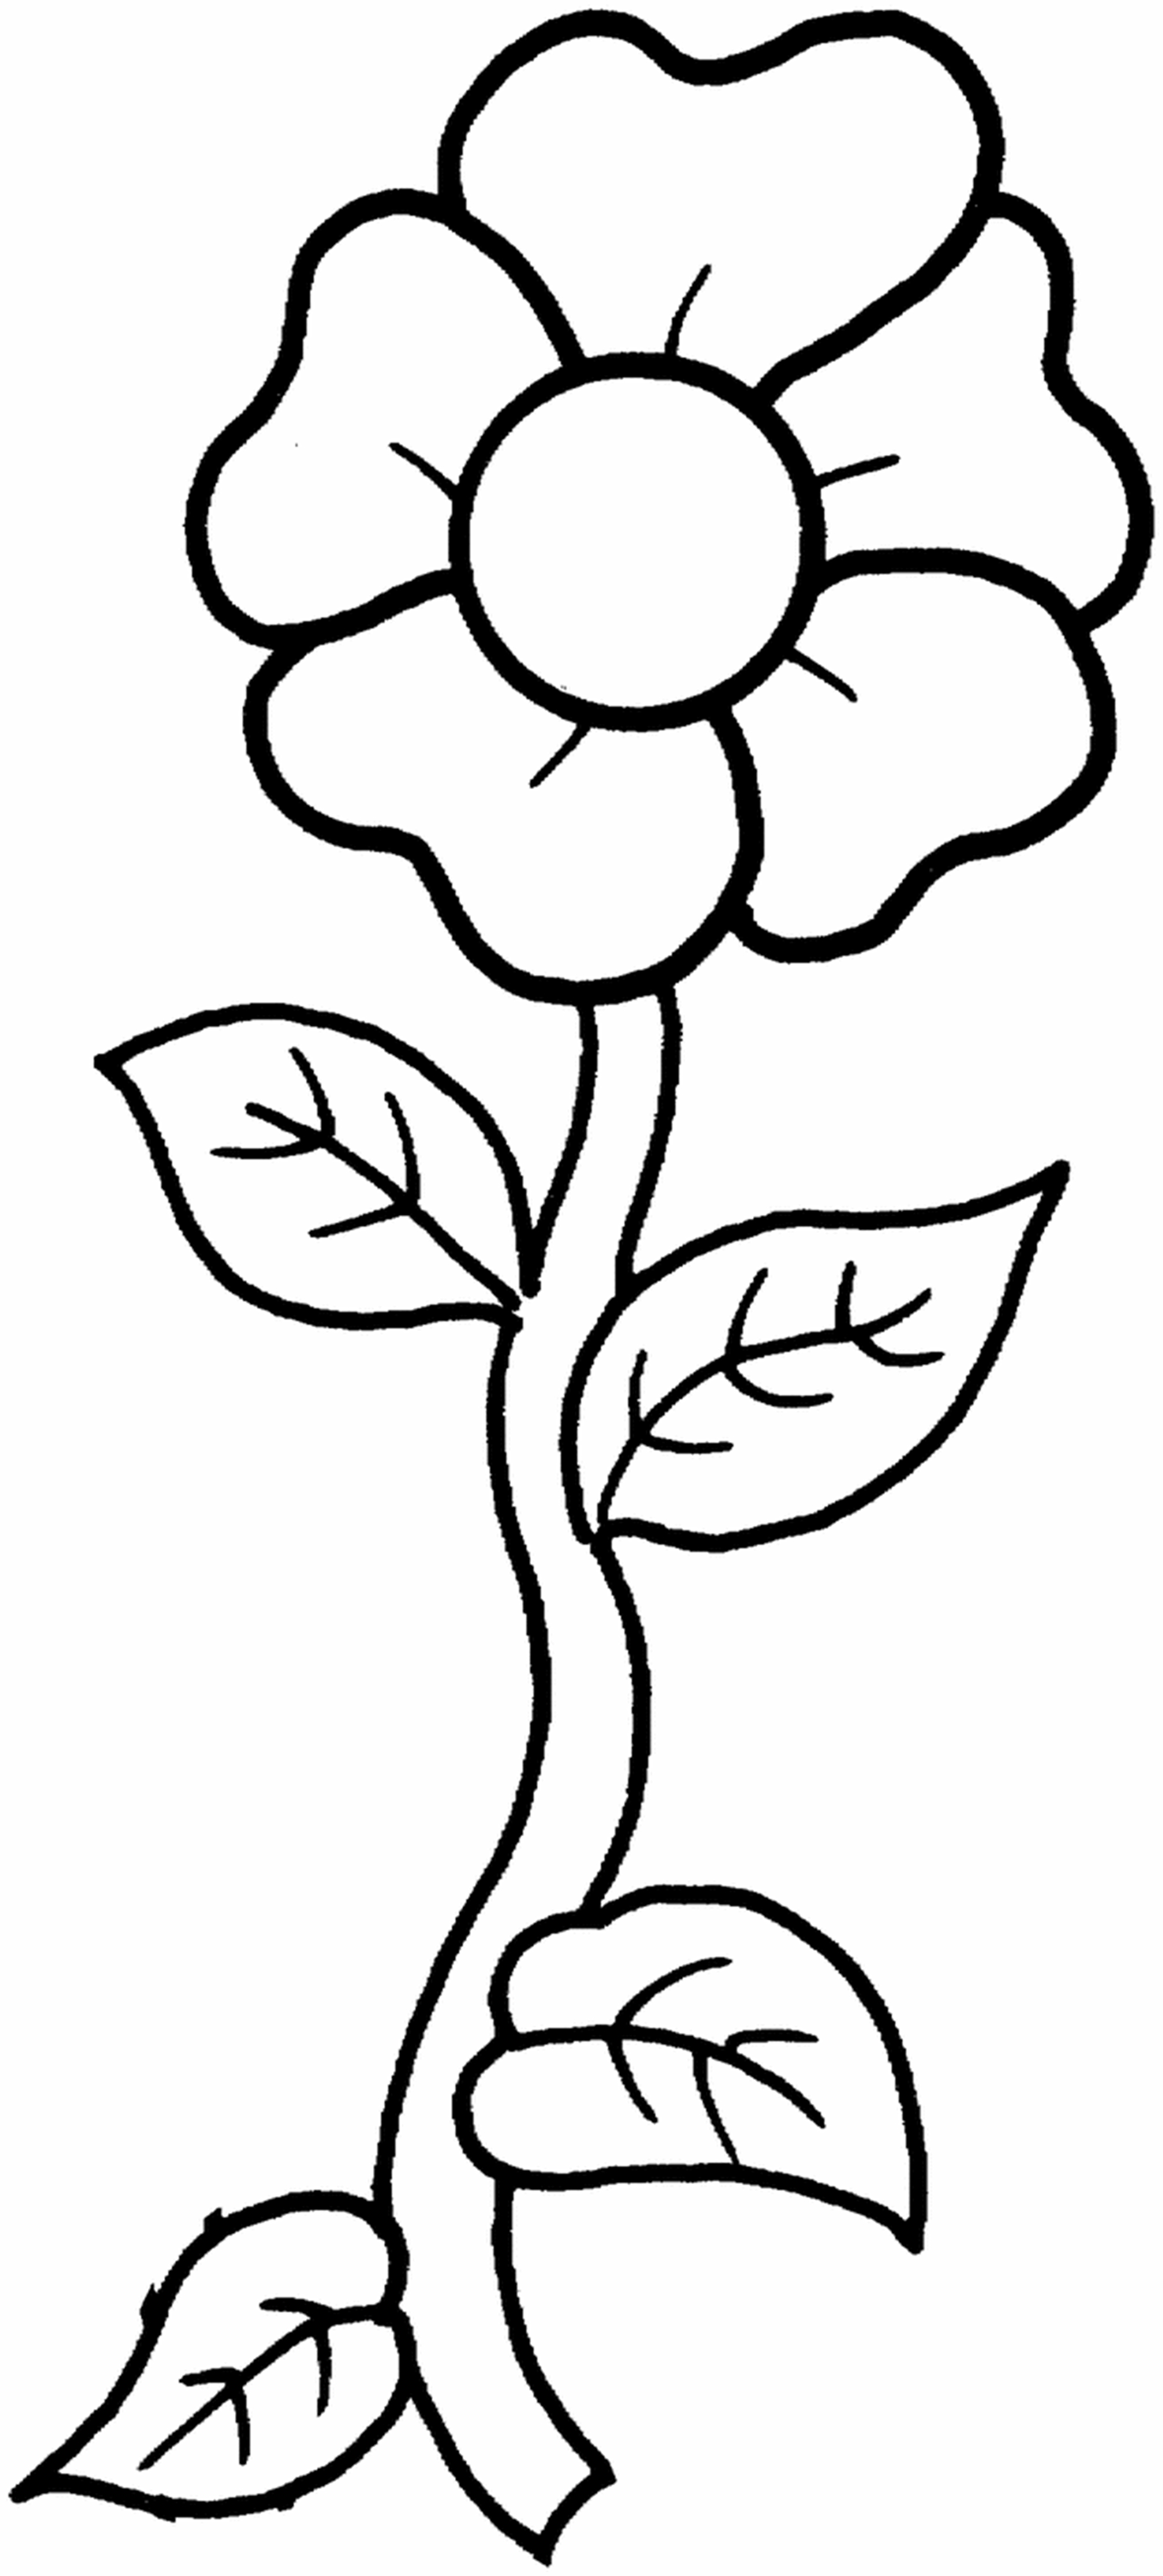 colouring pictures of plants free printable flower coloring pages for kids best plants pictures colouring of